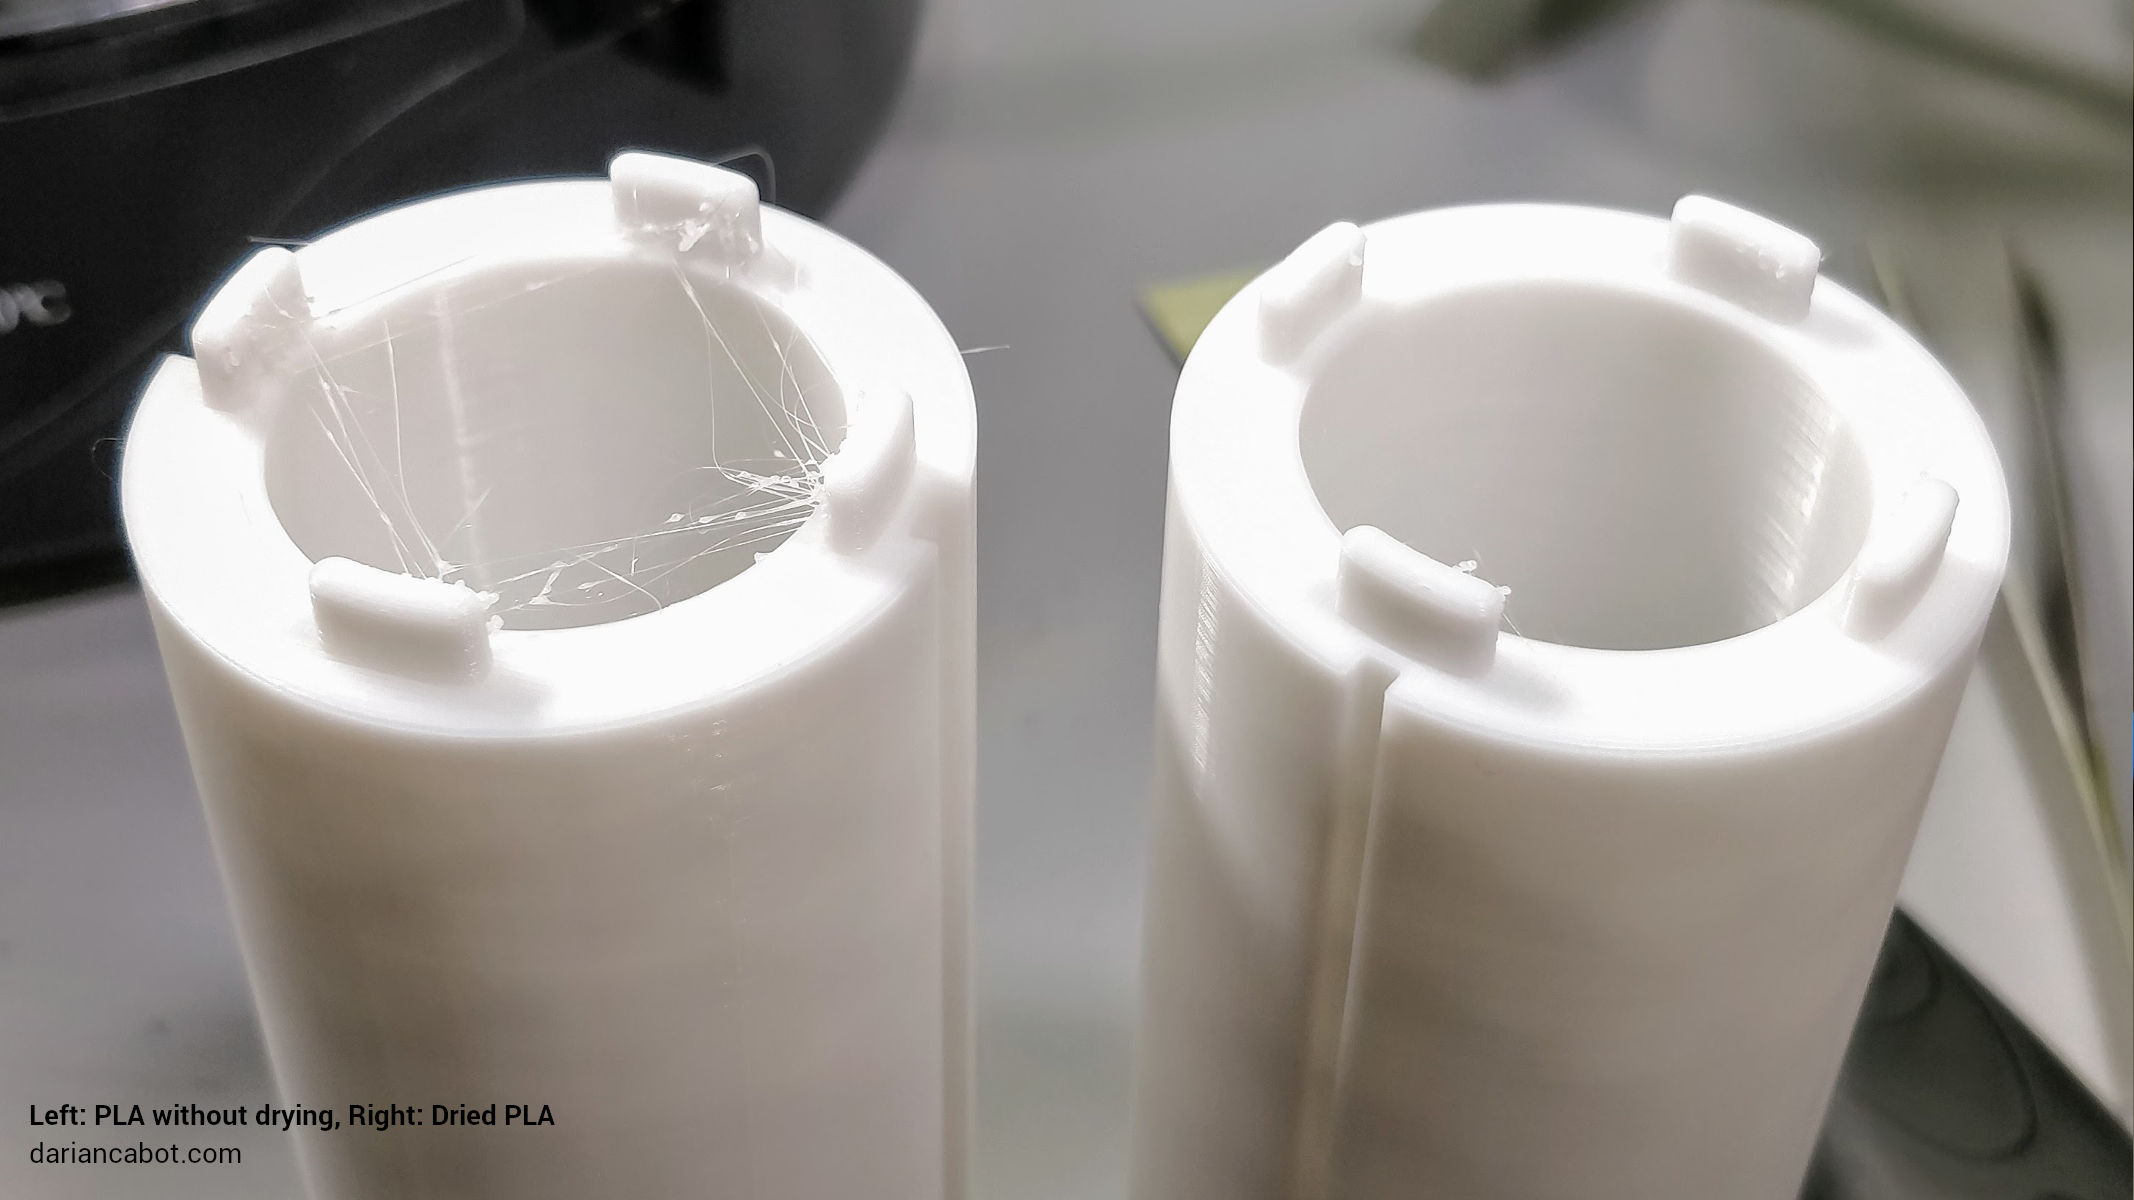 Comparison showing dried PLA prints with much less stringing